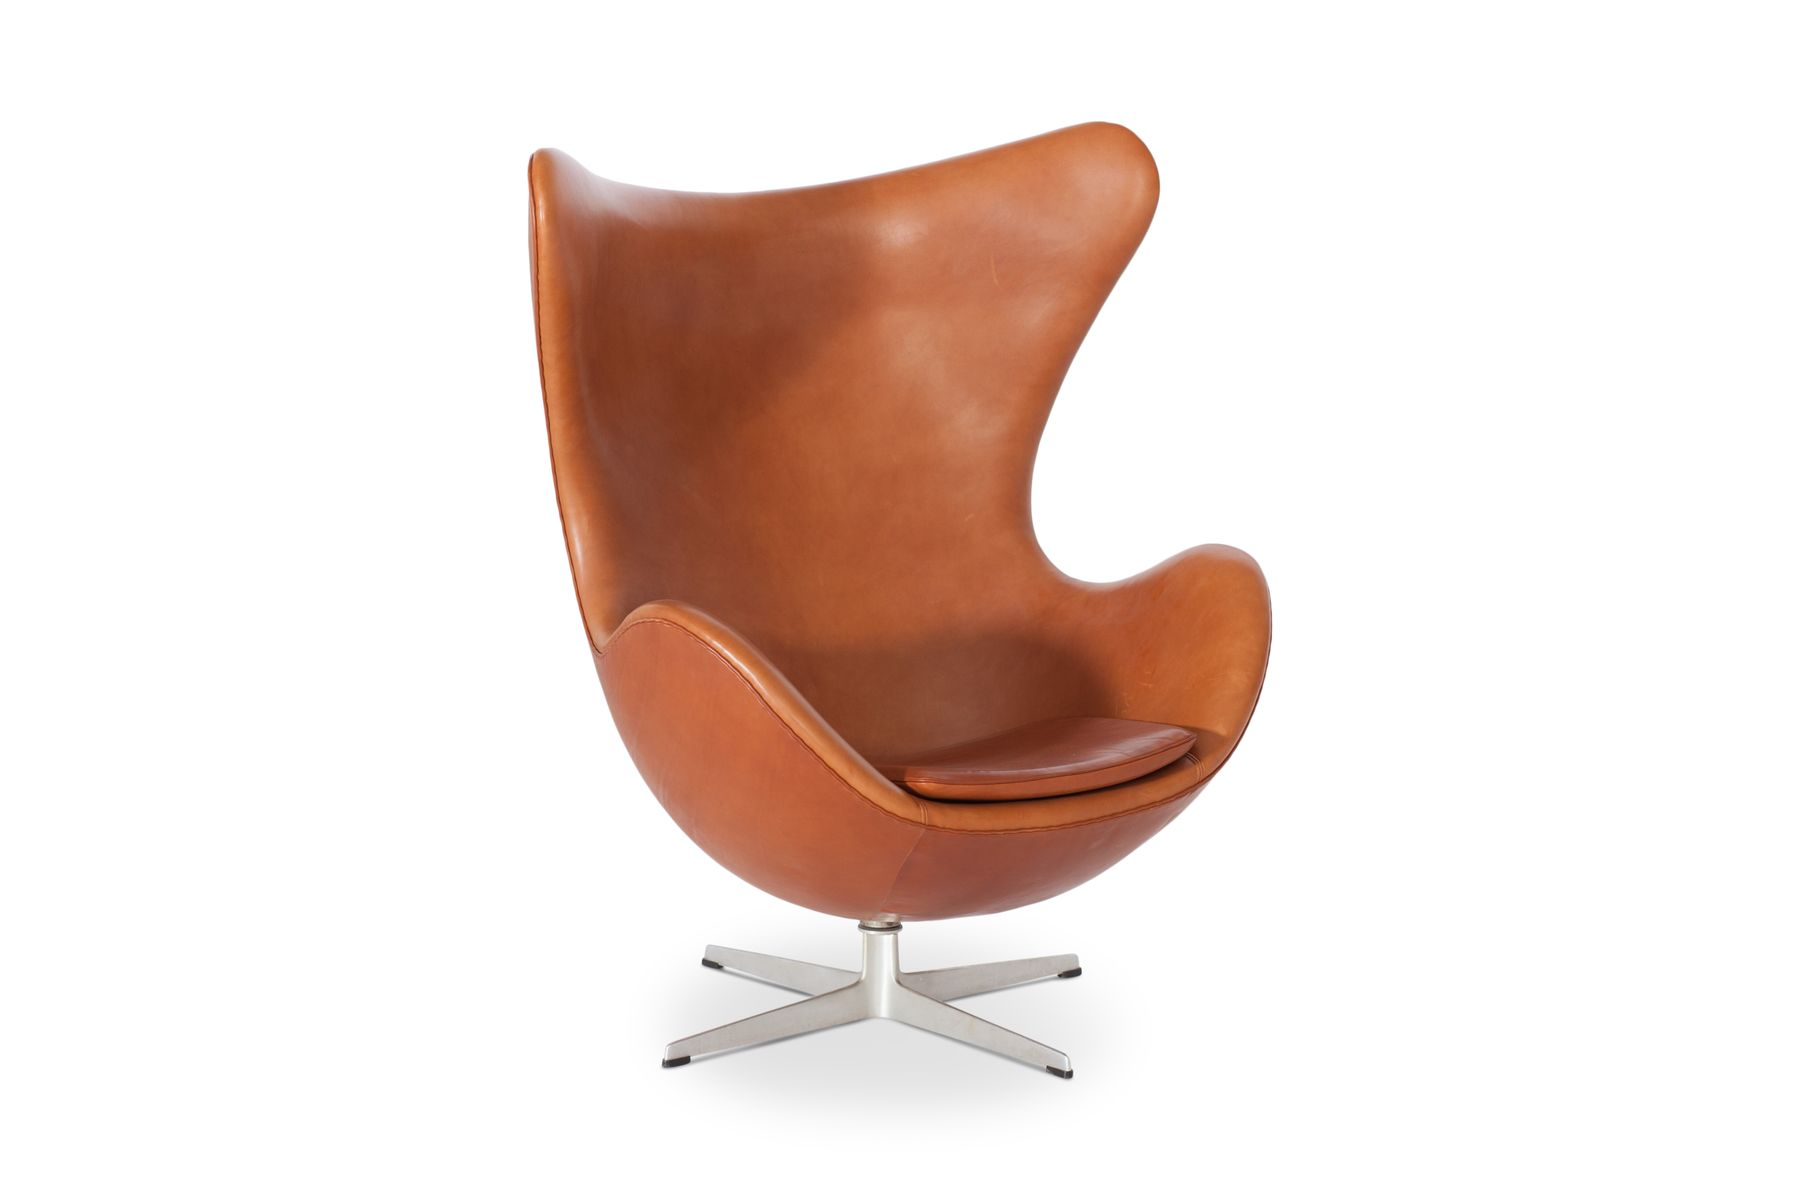 egg chair in cognac leather by arne jacobsen for fritz hansen 1960s for sale at pamono. Black Bedroom Furniture Sets. Home Design Ideas